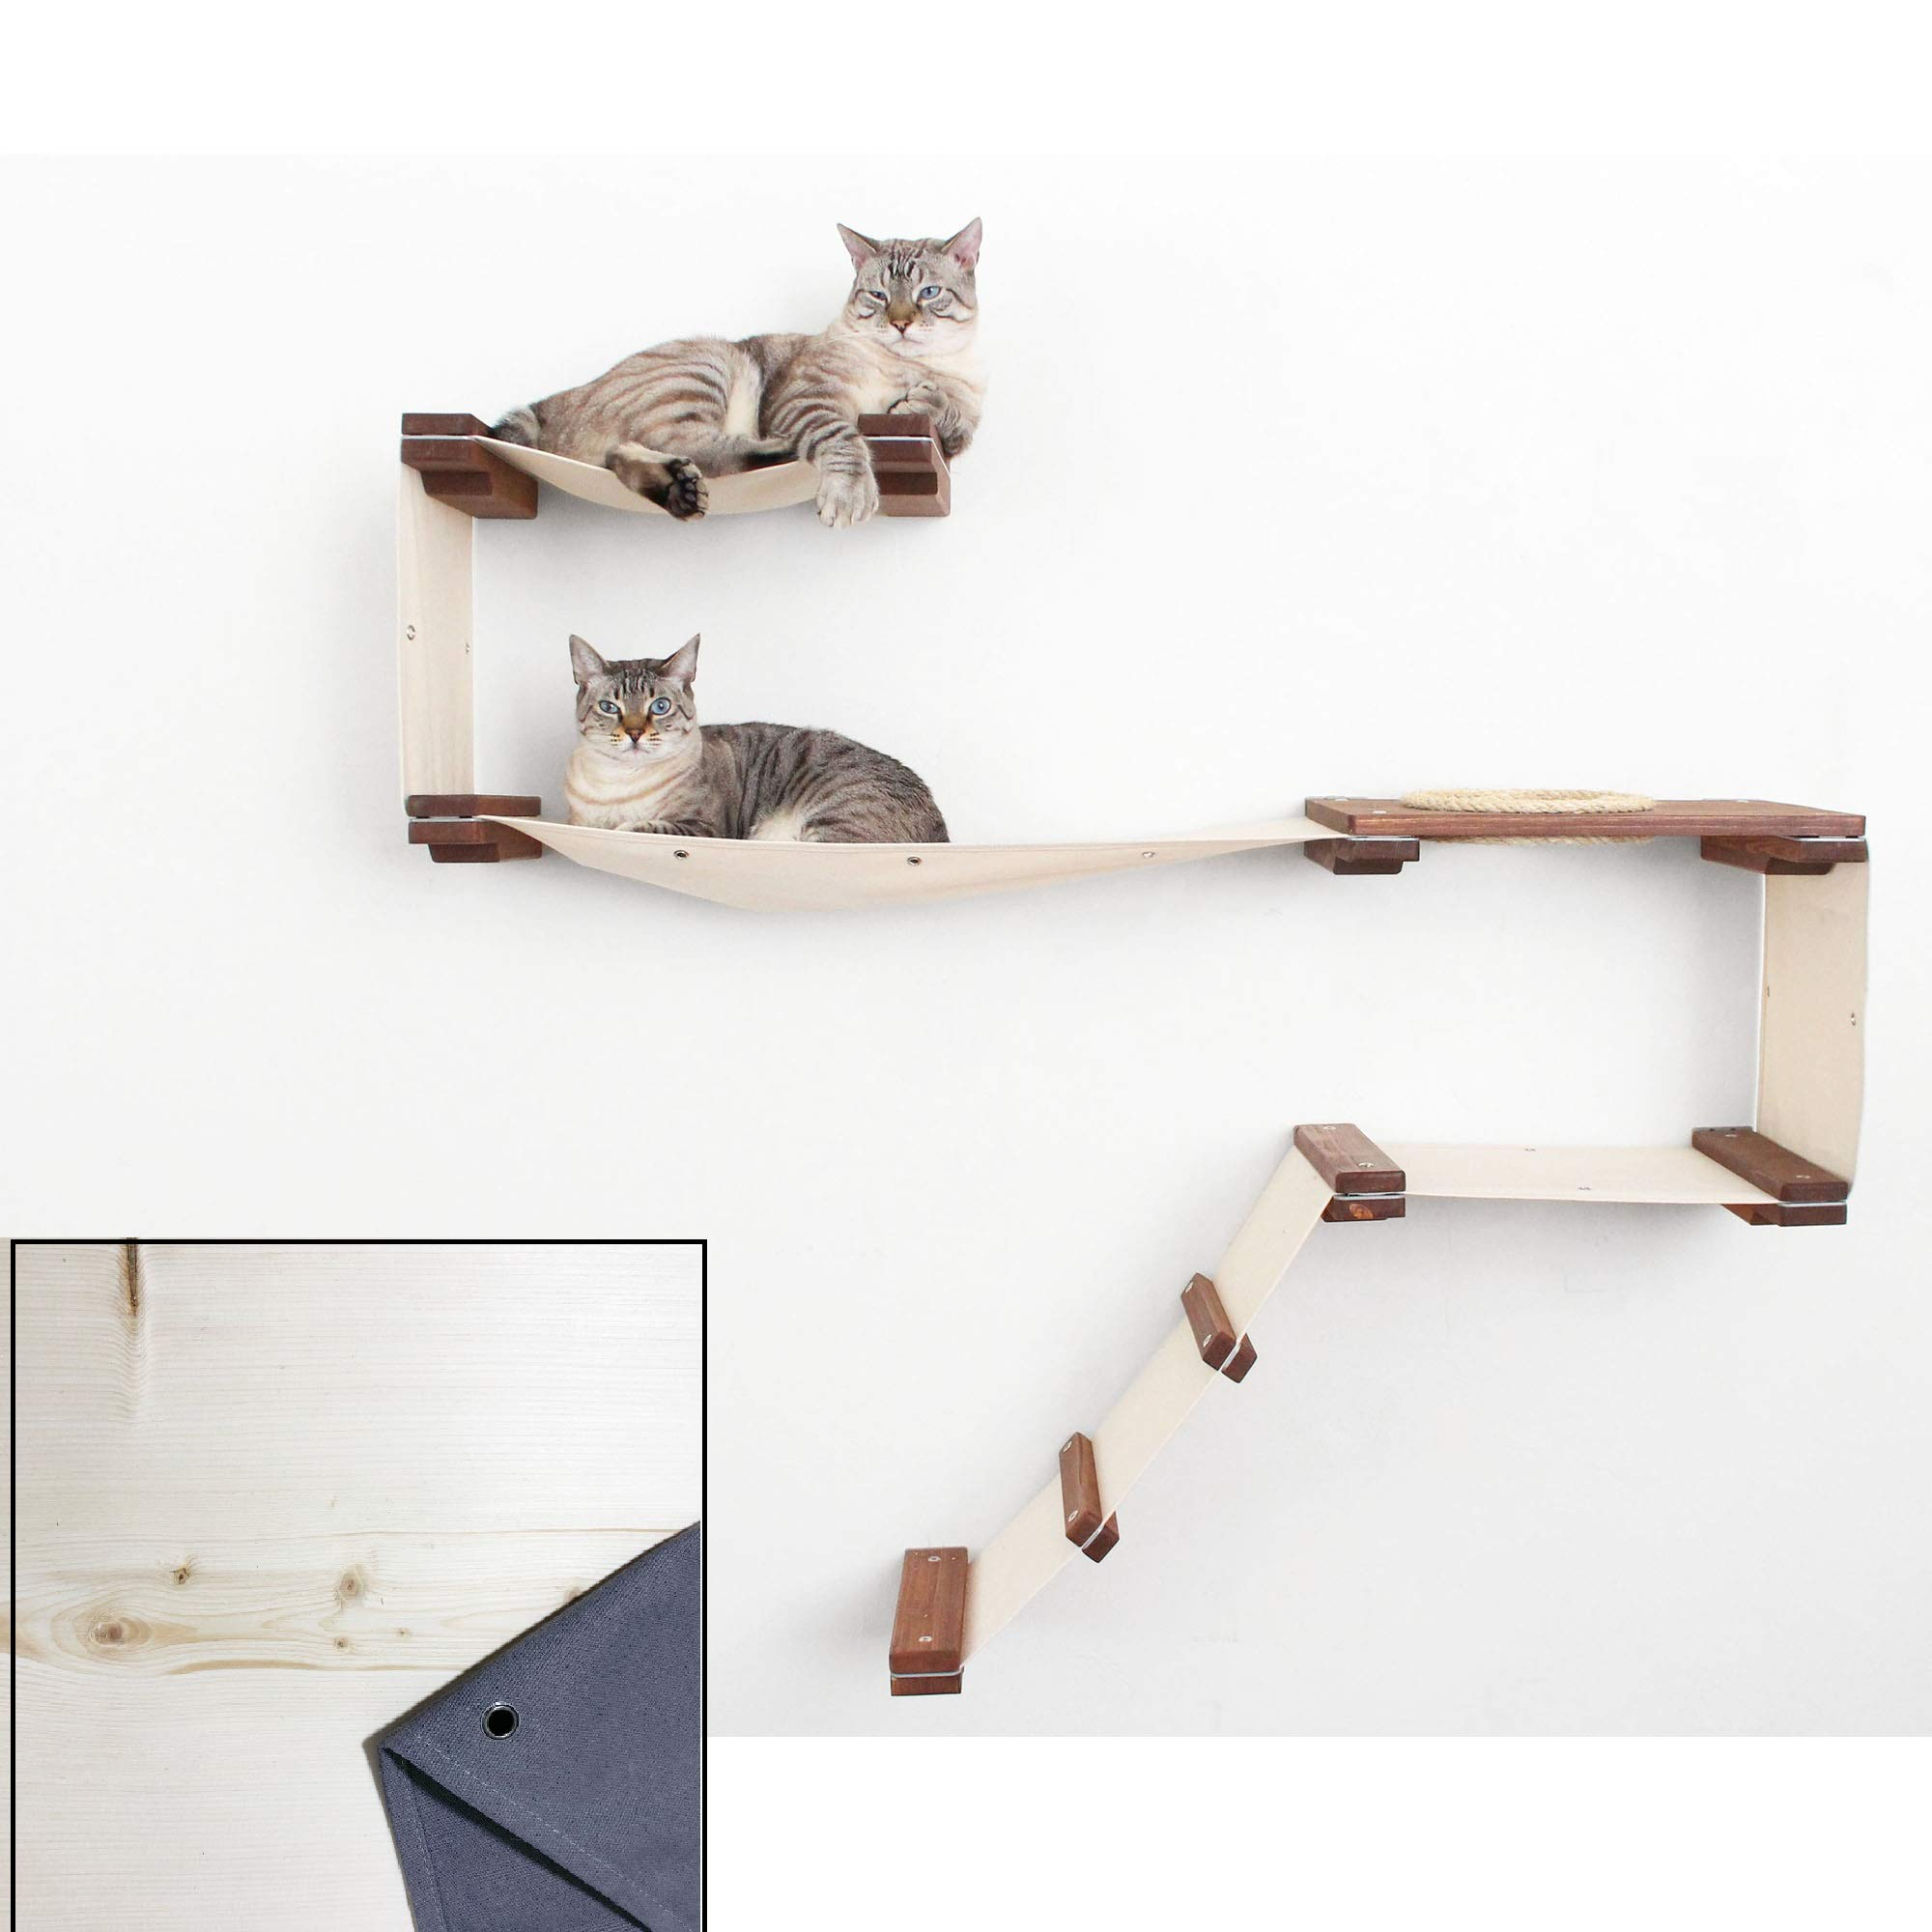 CatastrophiCreations Cat Mod Play Handcrafted Wall-Mounted Activity Cat Tree Shelves